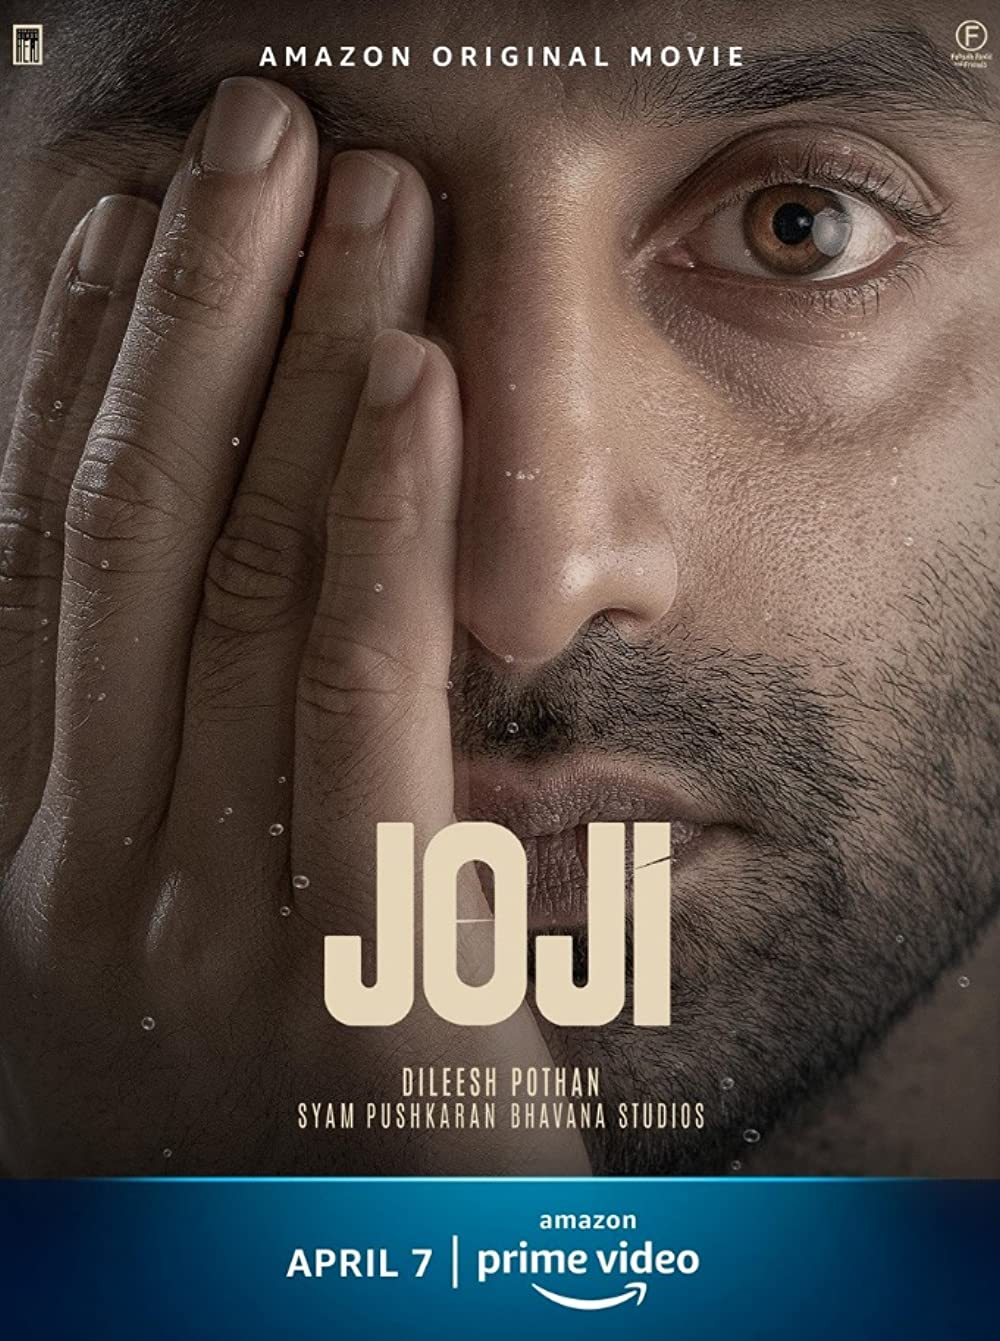 Joji 2021 Malayalam Movie 720p AMZN HDRip ESubs 1.1GB x264 AAC